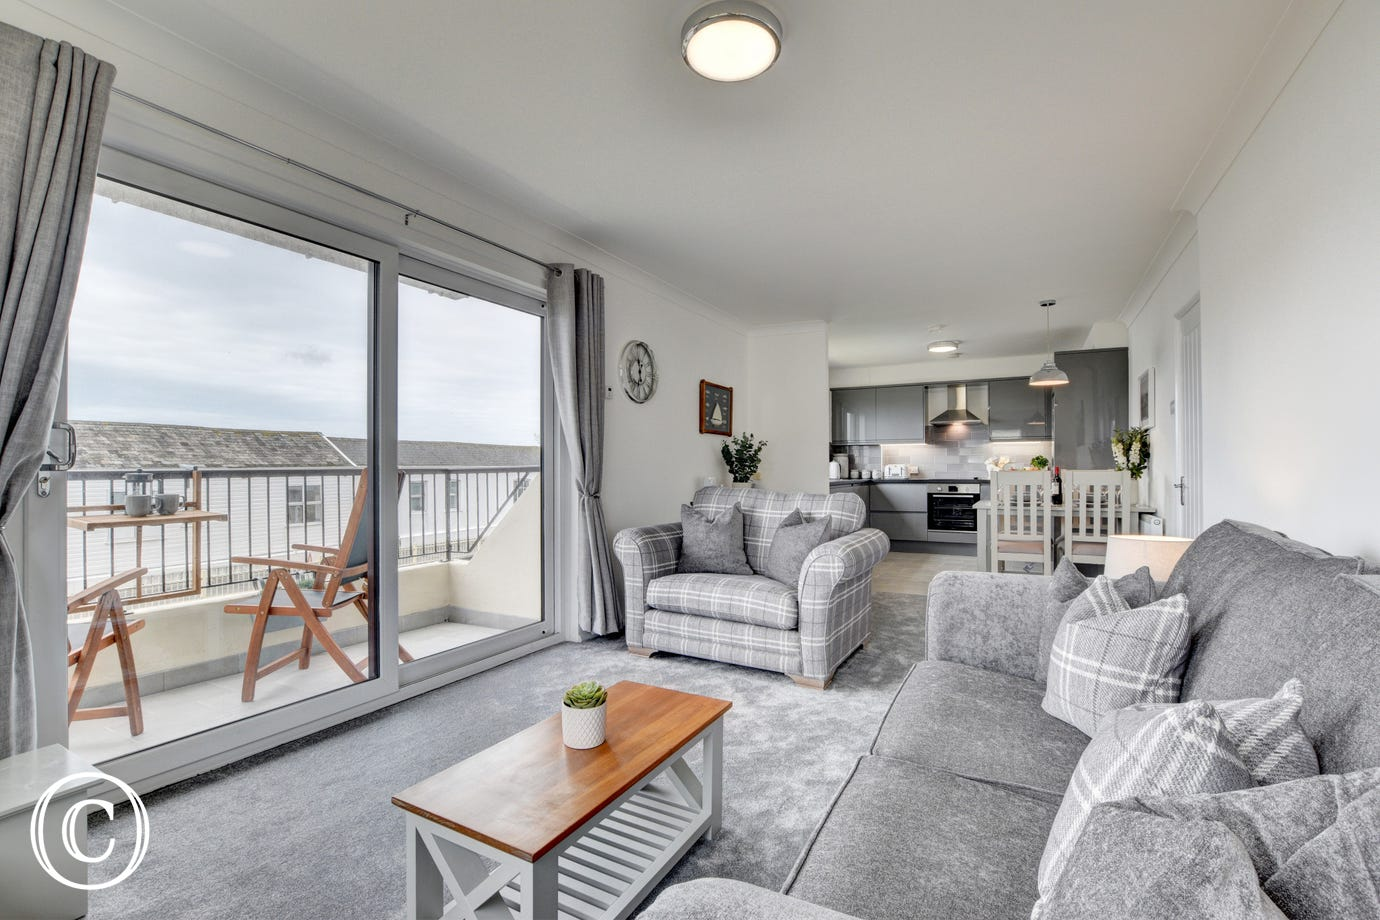 Spinnaker is located in the heart of the village of Instow